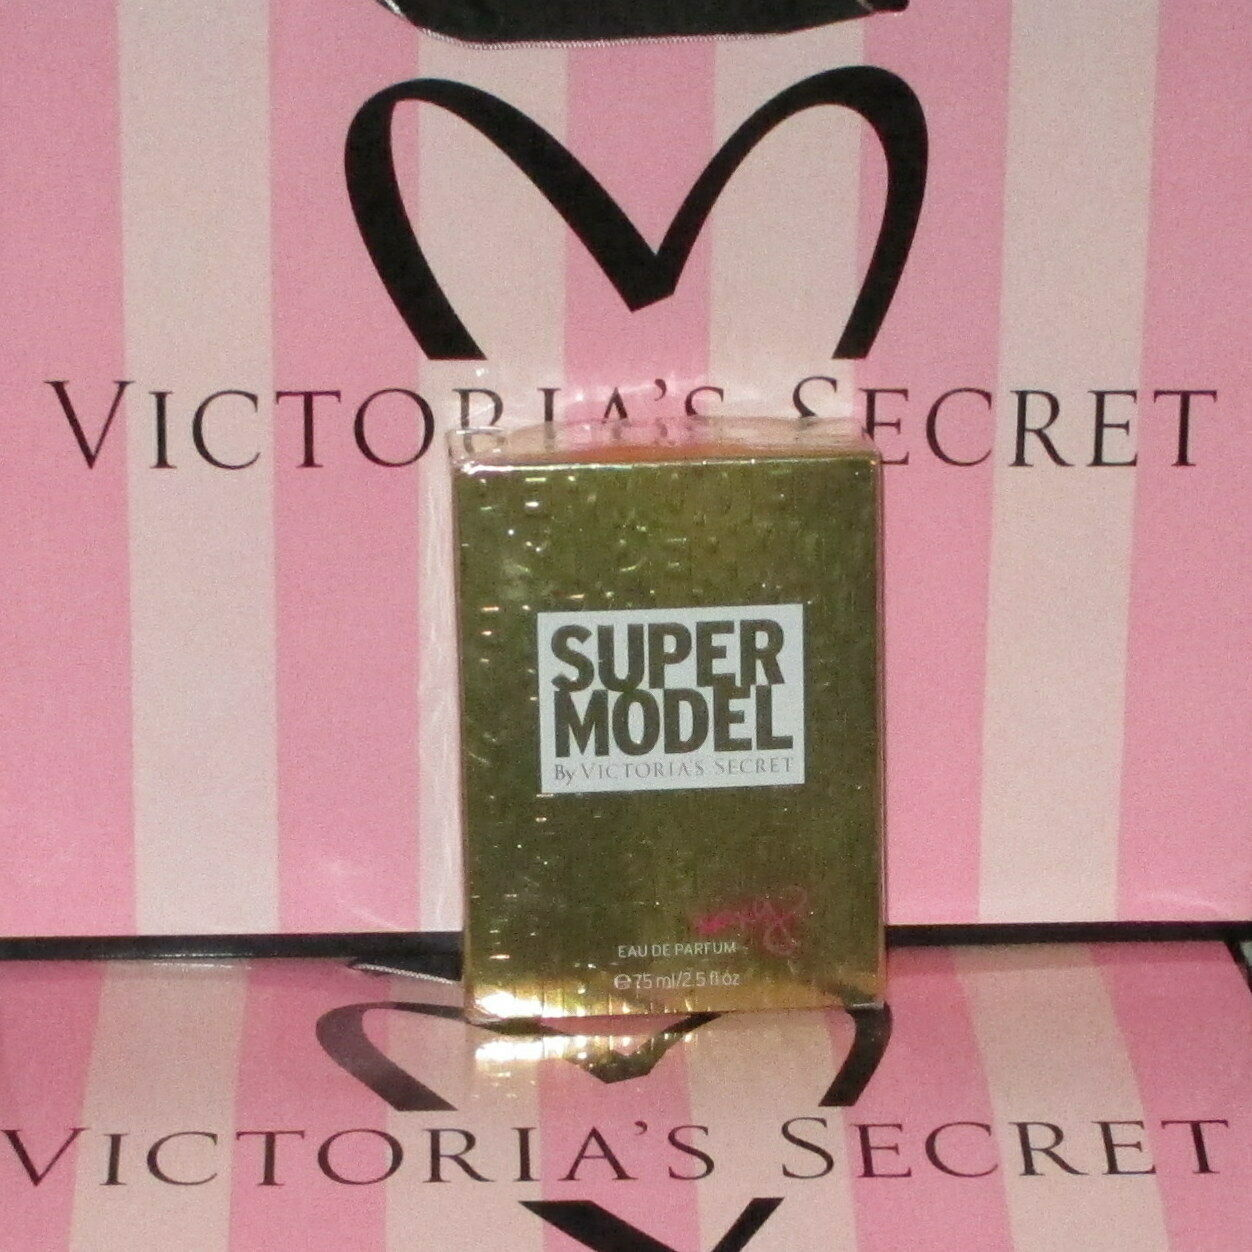 Primary image for Victoria's Secret Supermodel Super Model Eau de Parfum 2.5 Fl Oz